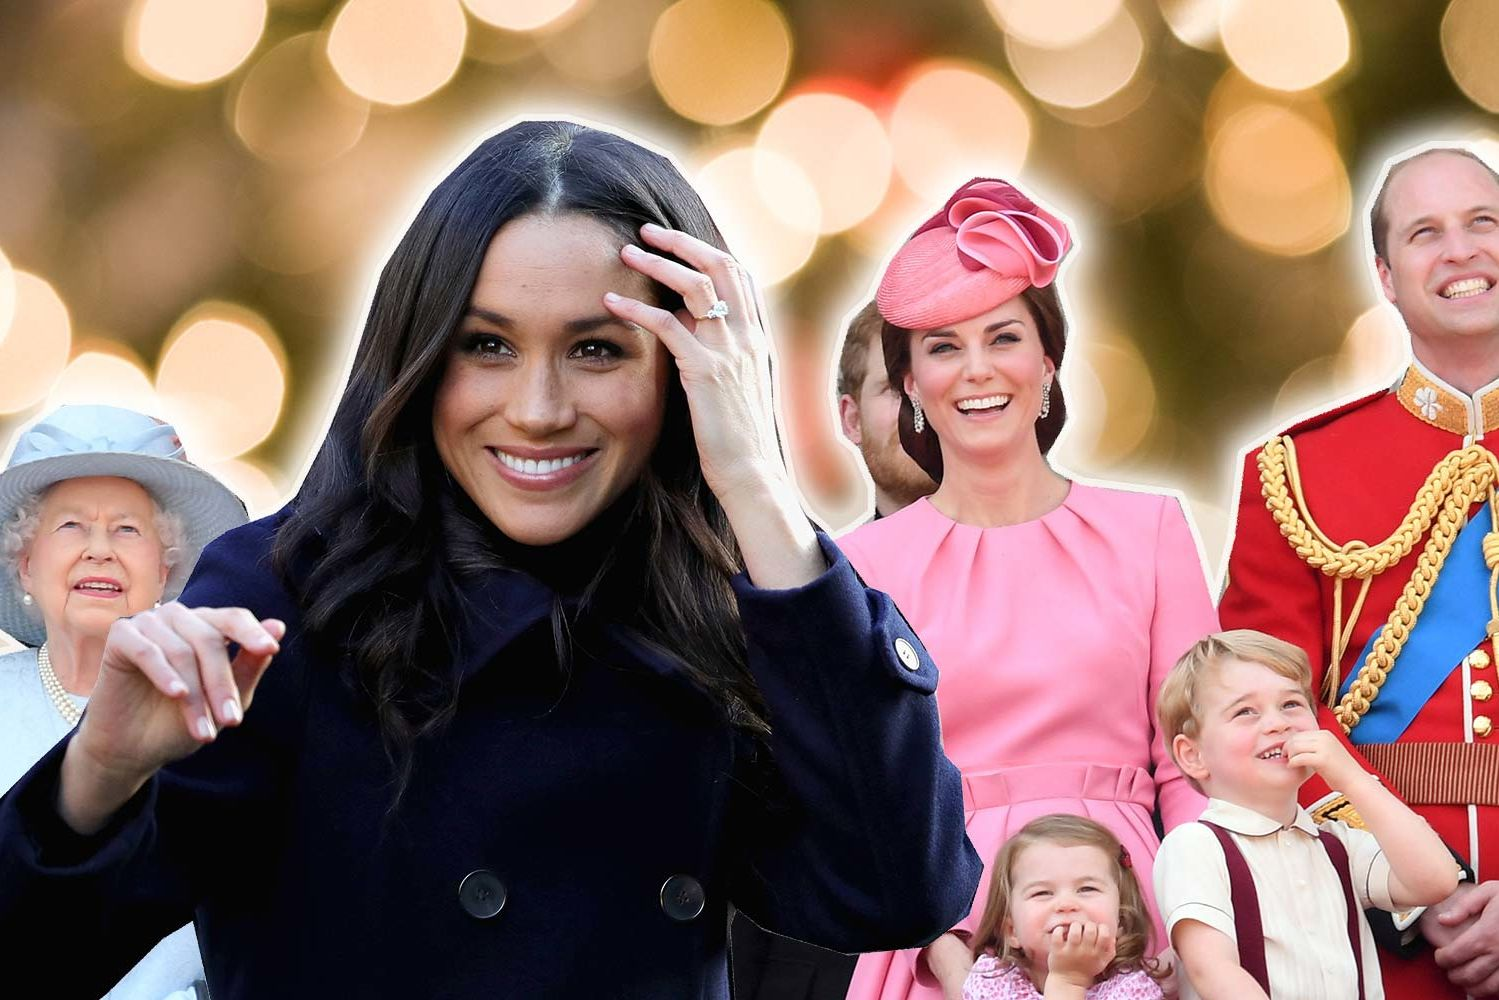 Here Are All the Royal Family Holiday Traditions Meghan Markle Will Now Take Part In